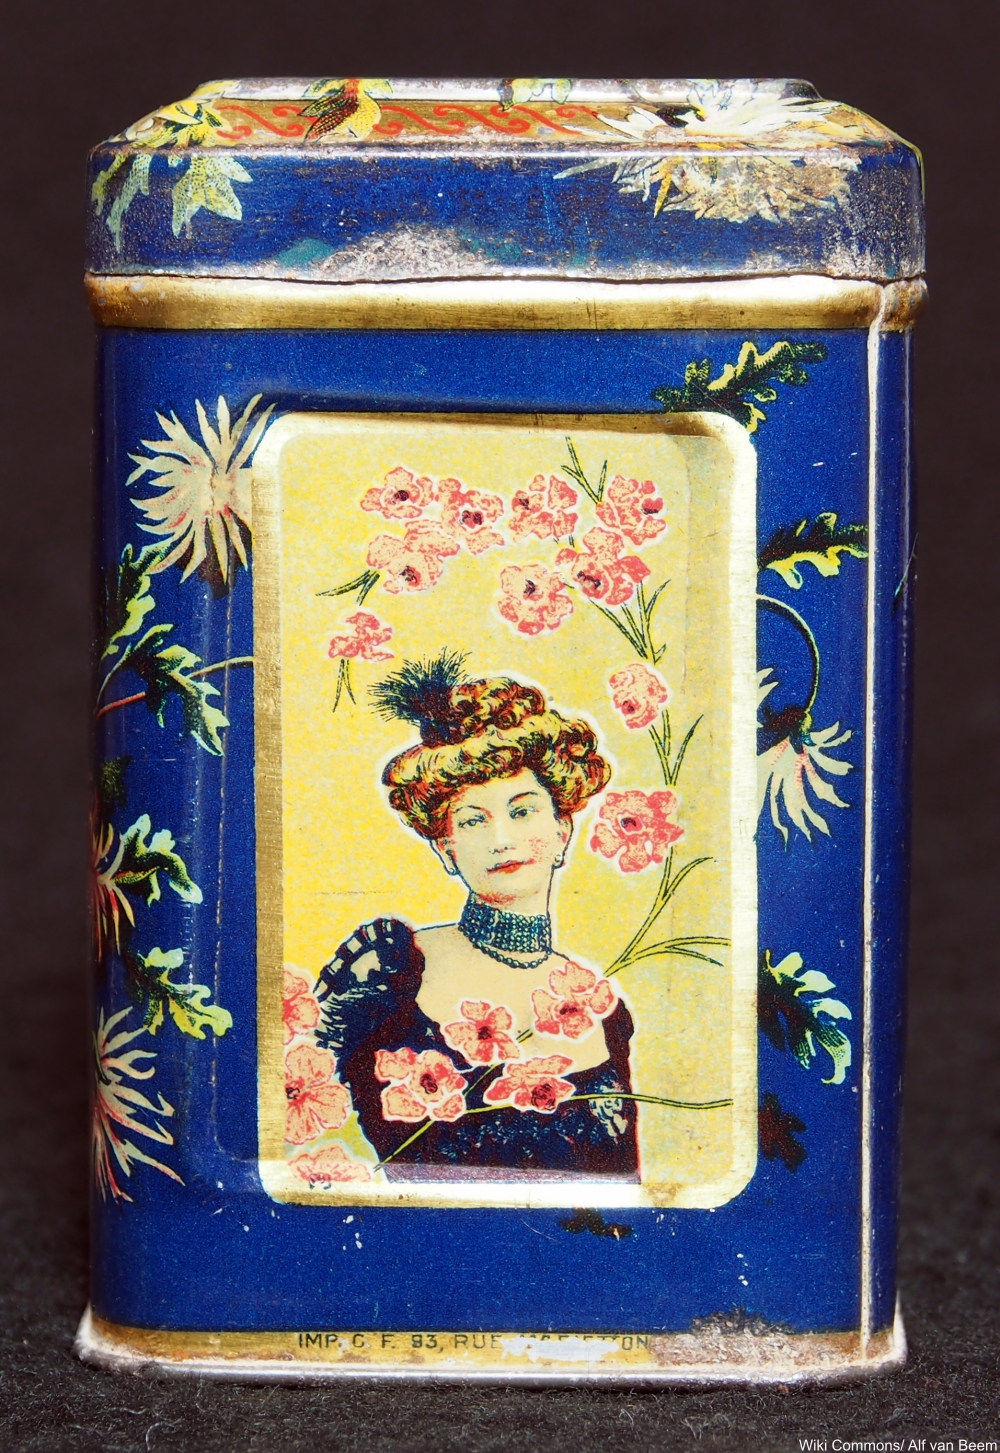 20th century tea tin featuring an Edwardian lady